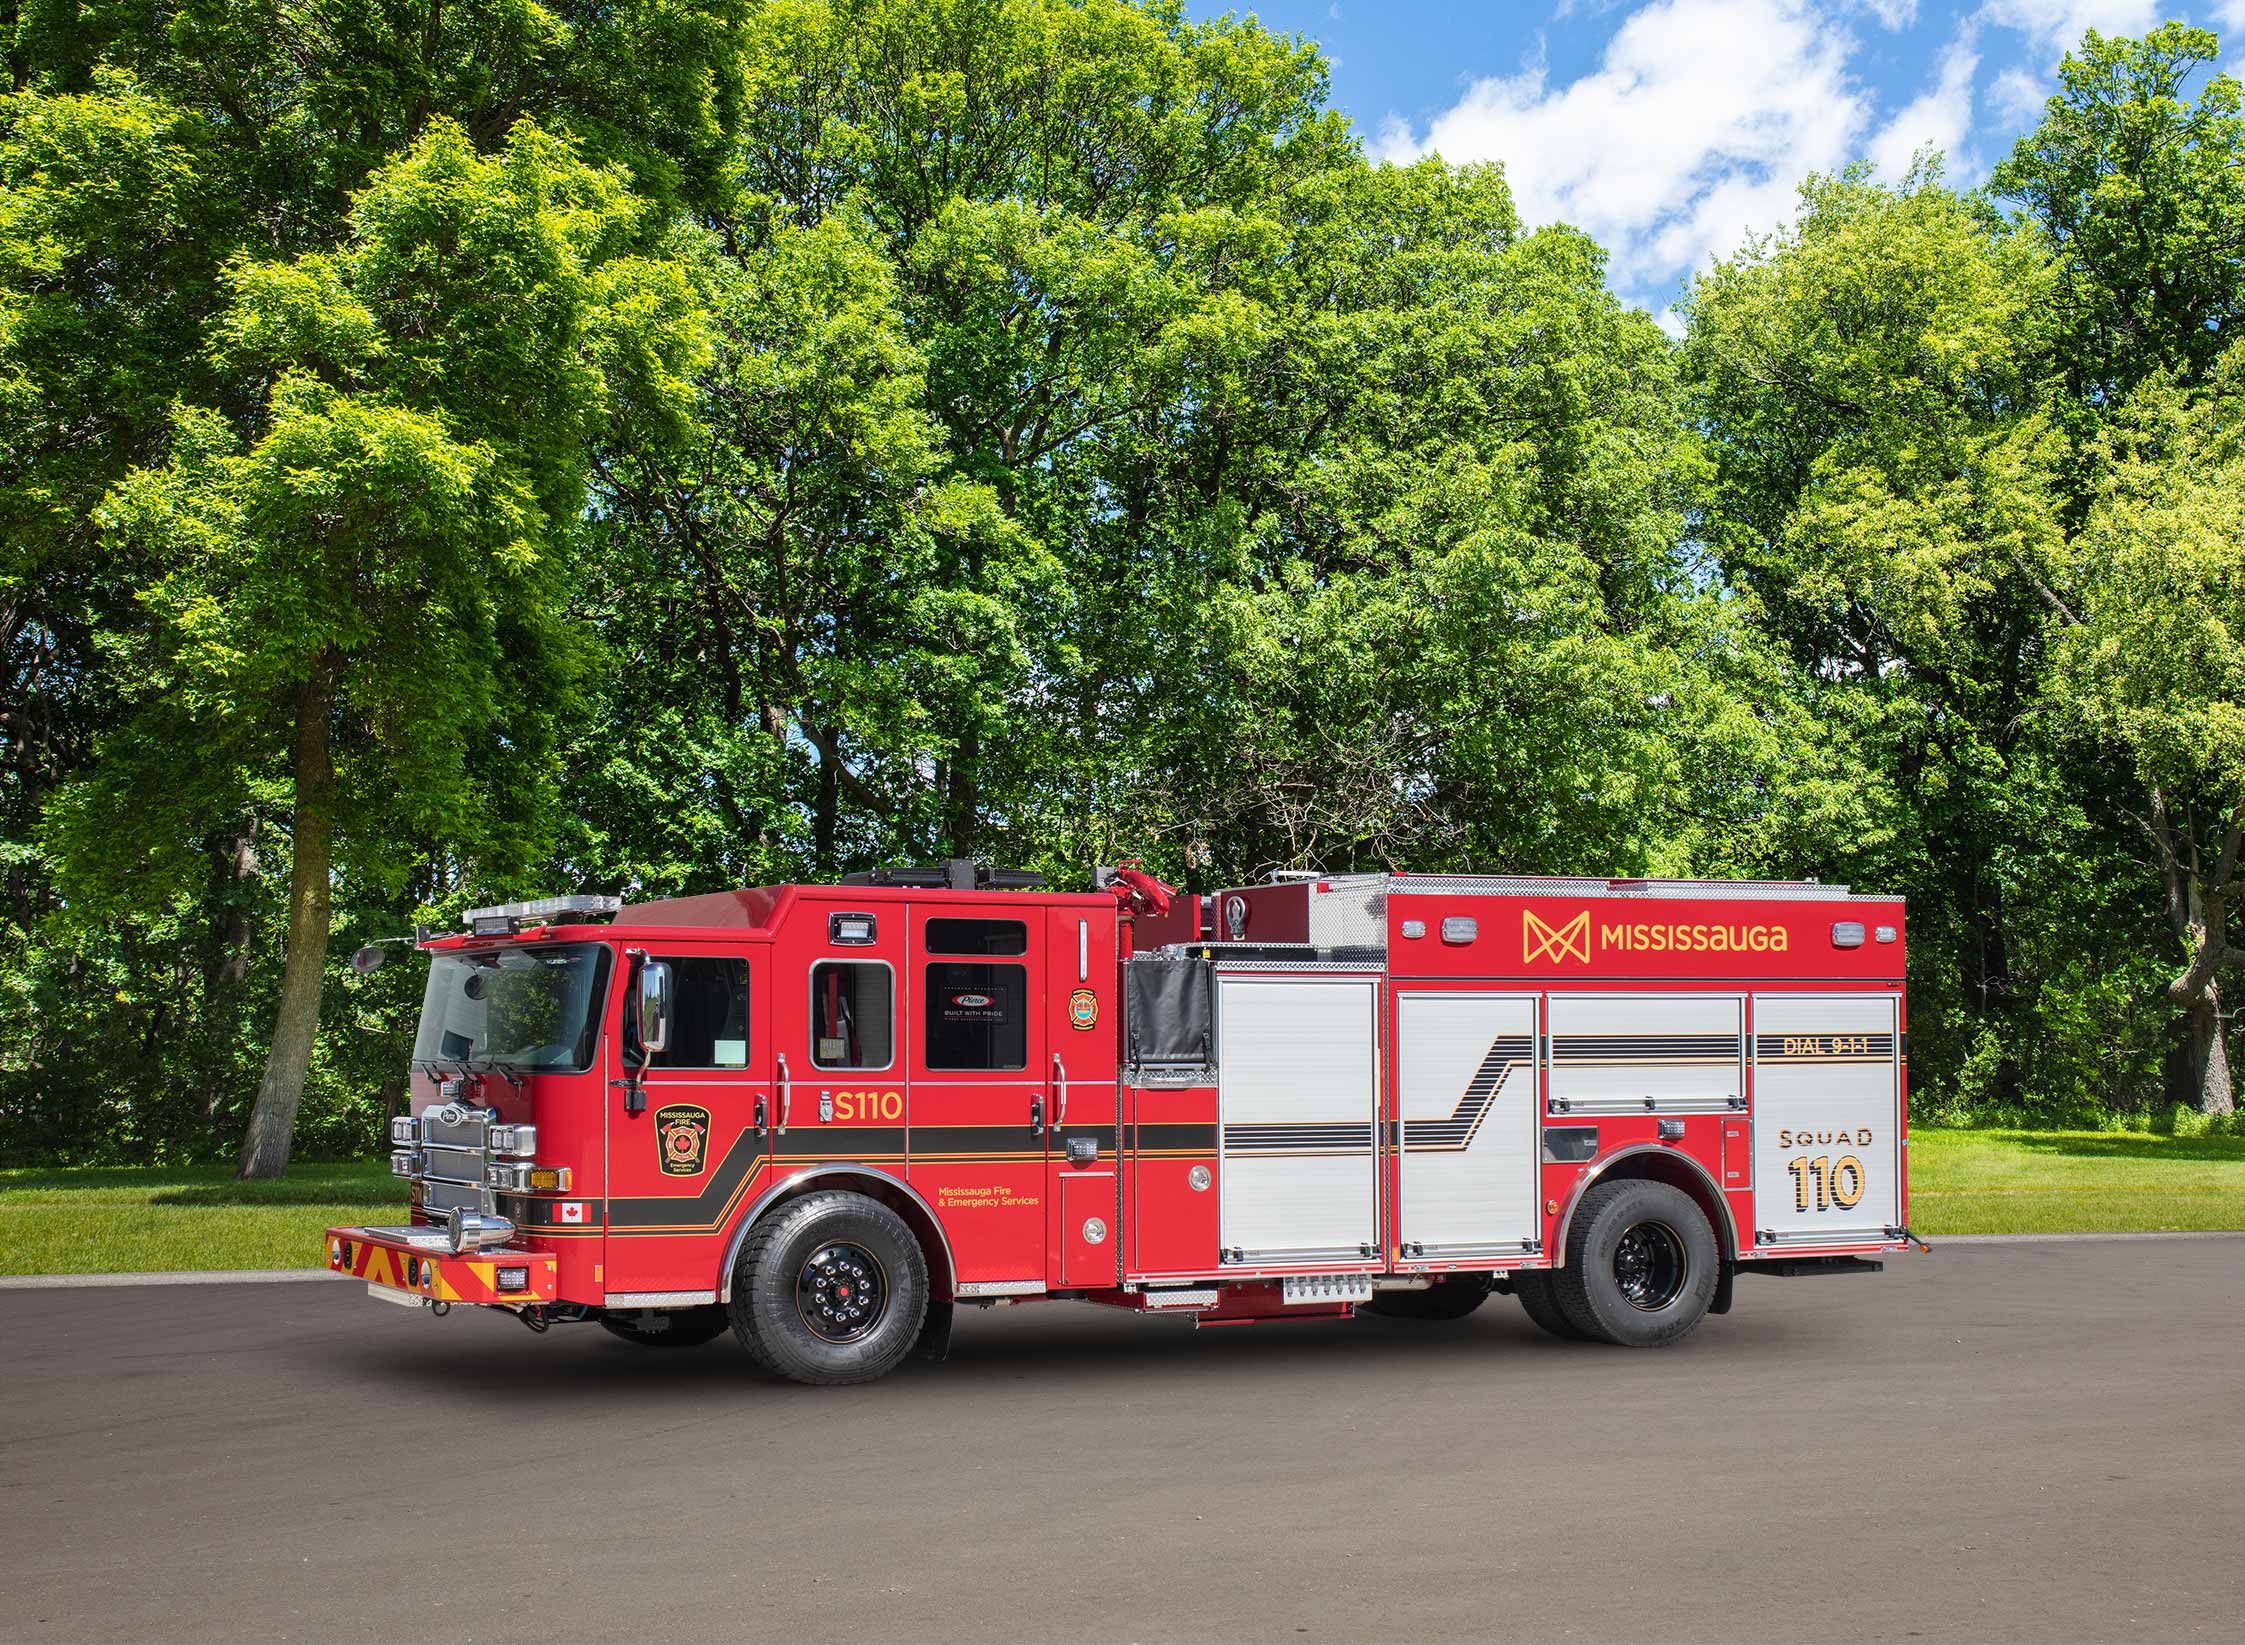 Mississauga Fire & Emergency Services - Pumper